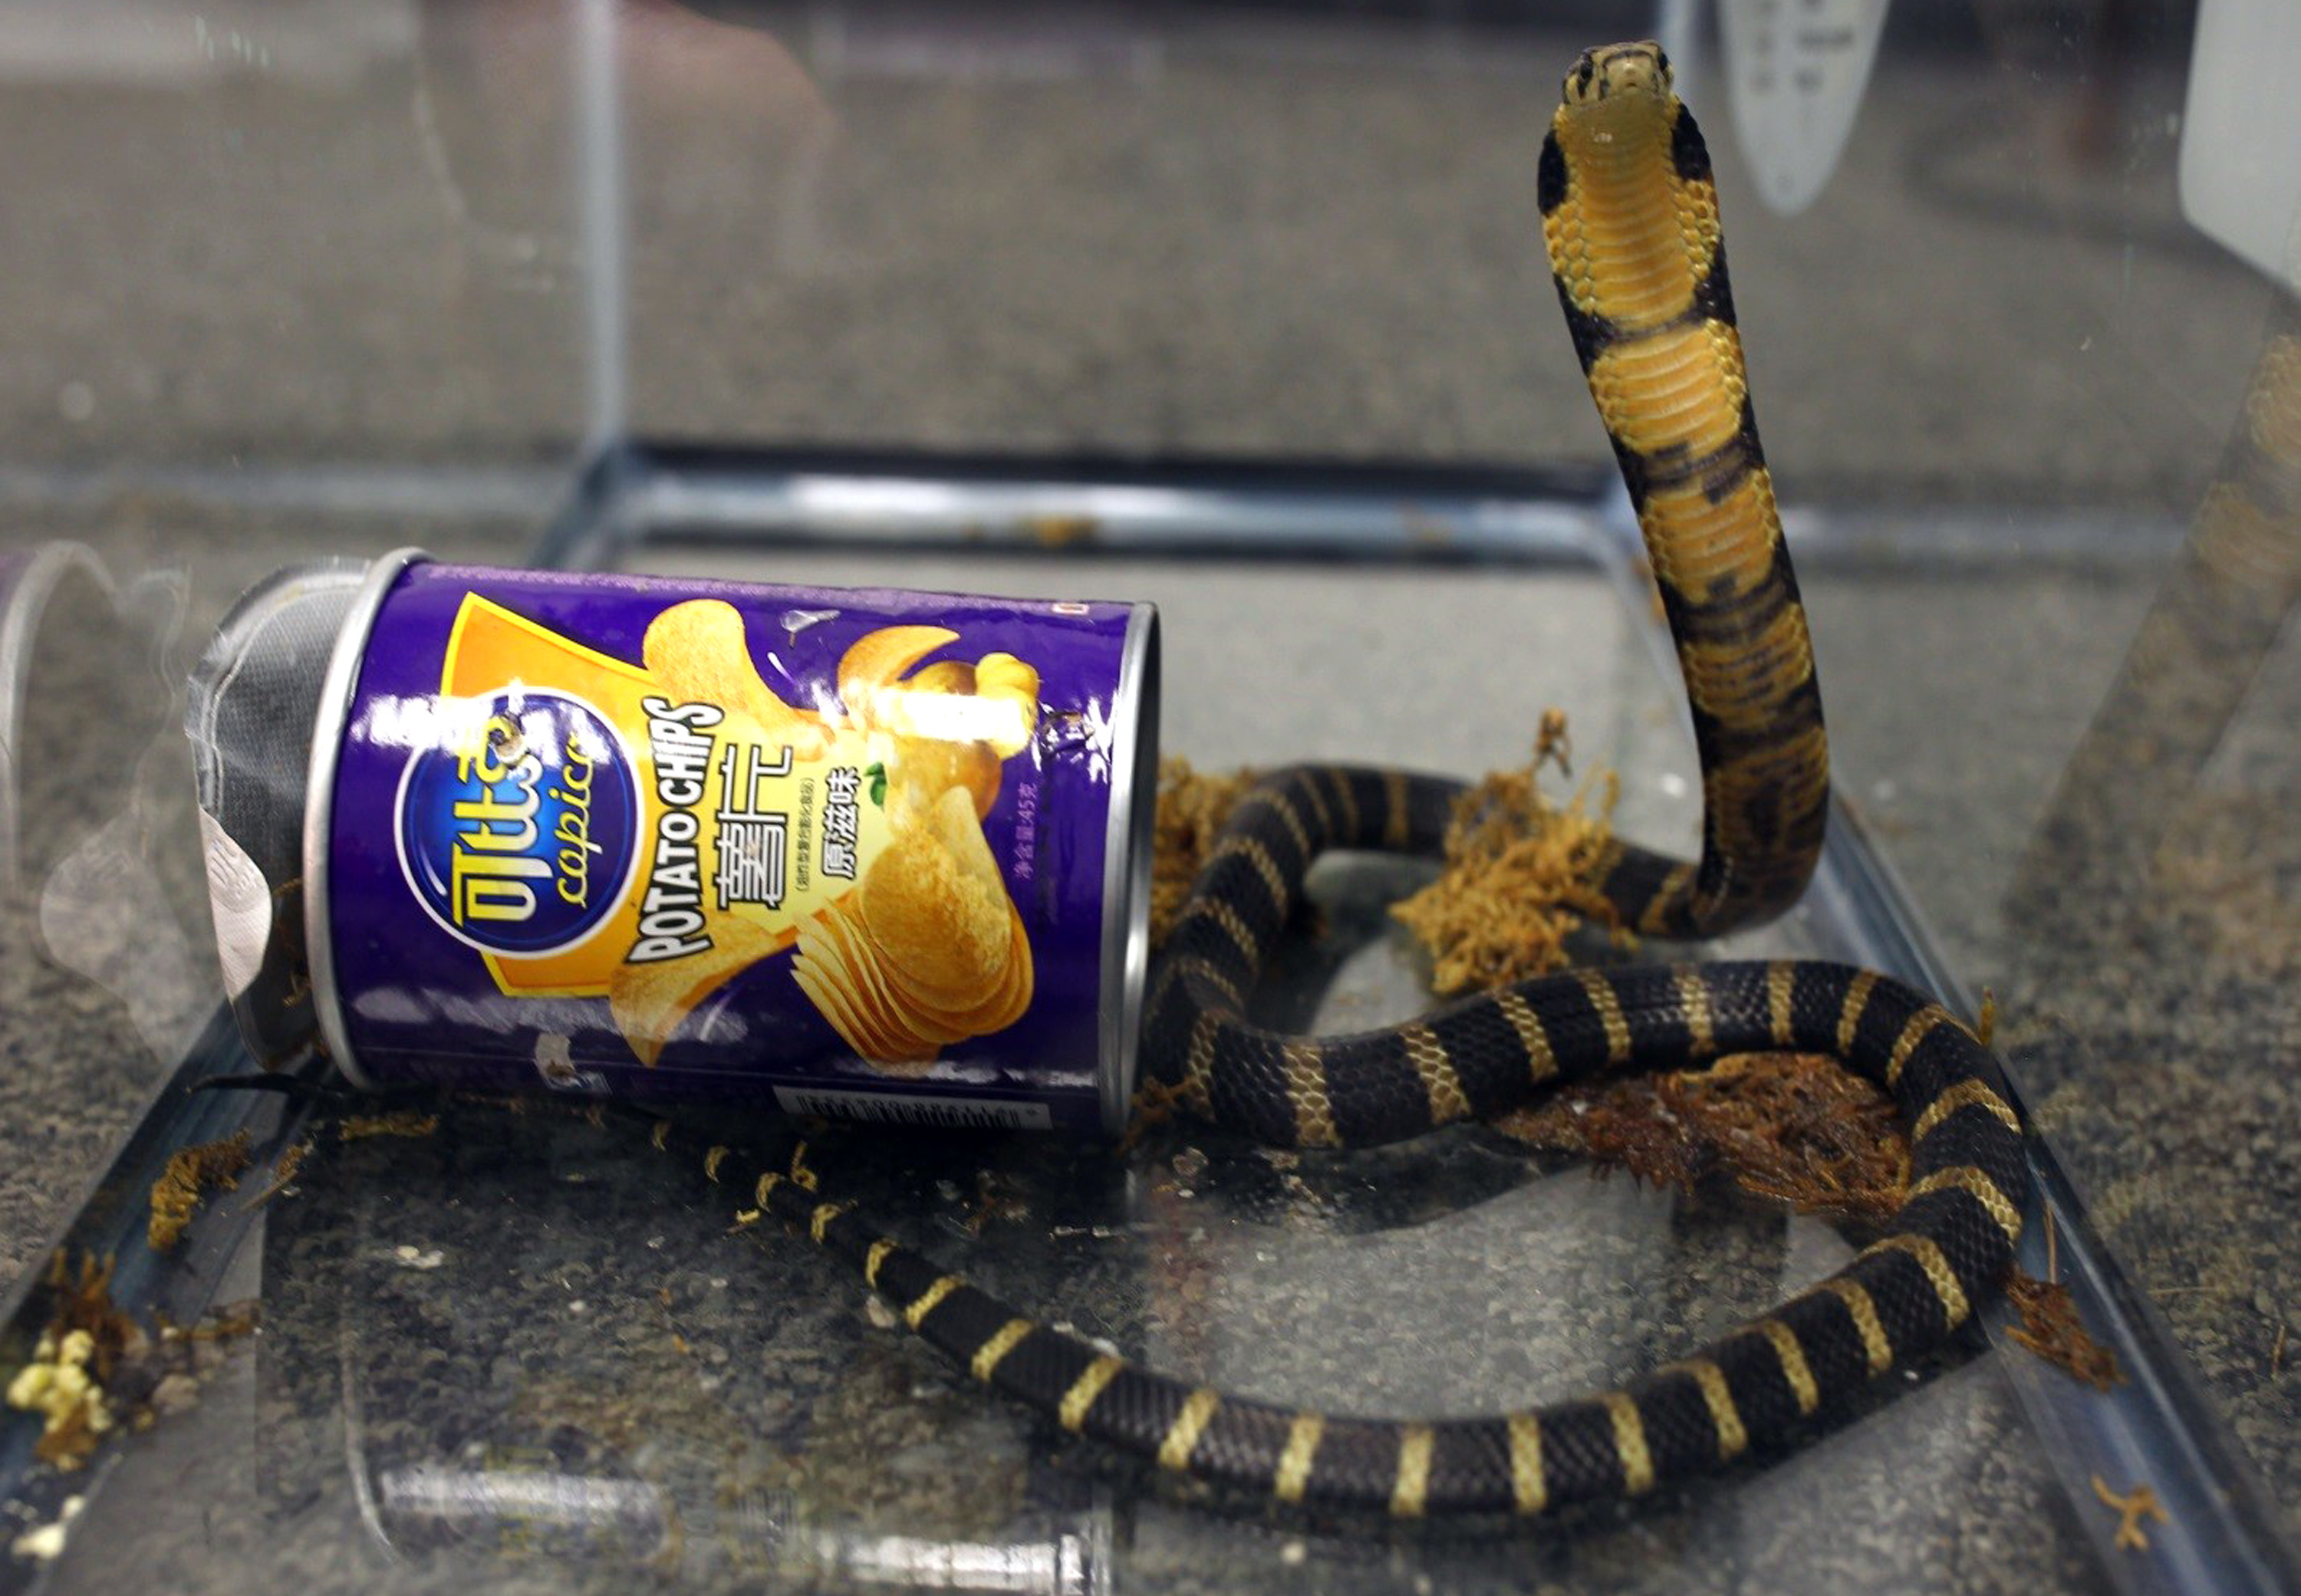 King Cobras In A Can: Deadly Snakes Arrive In U.S., Shipped As Potato Chips  : The Two-Way : NPR